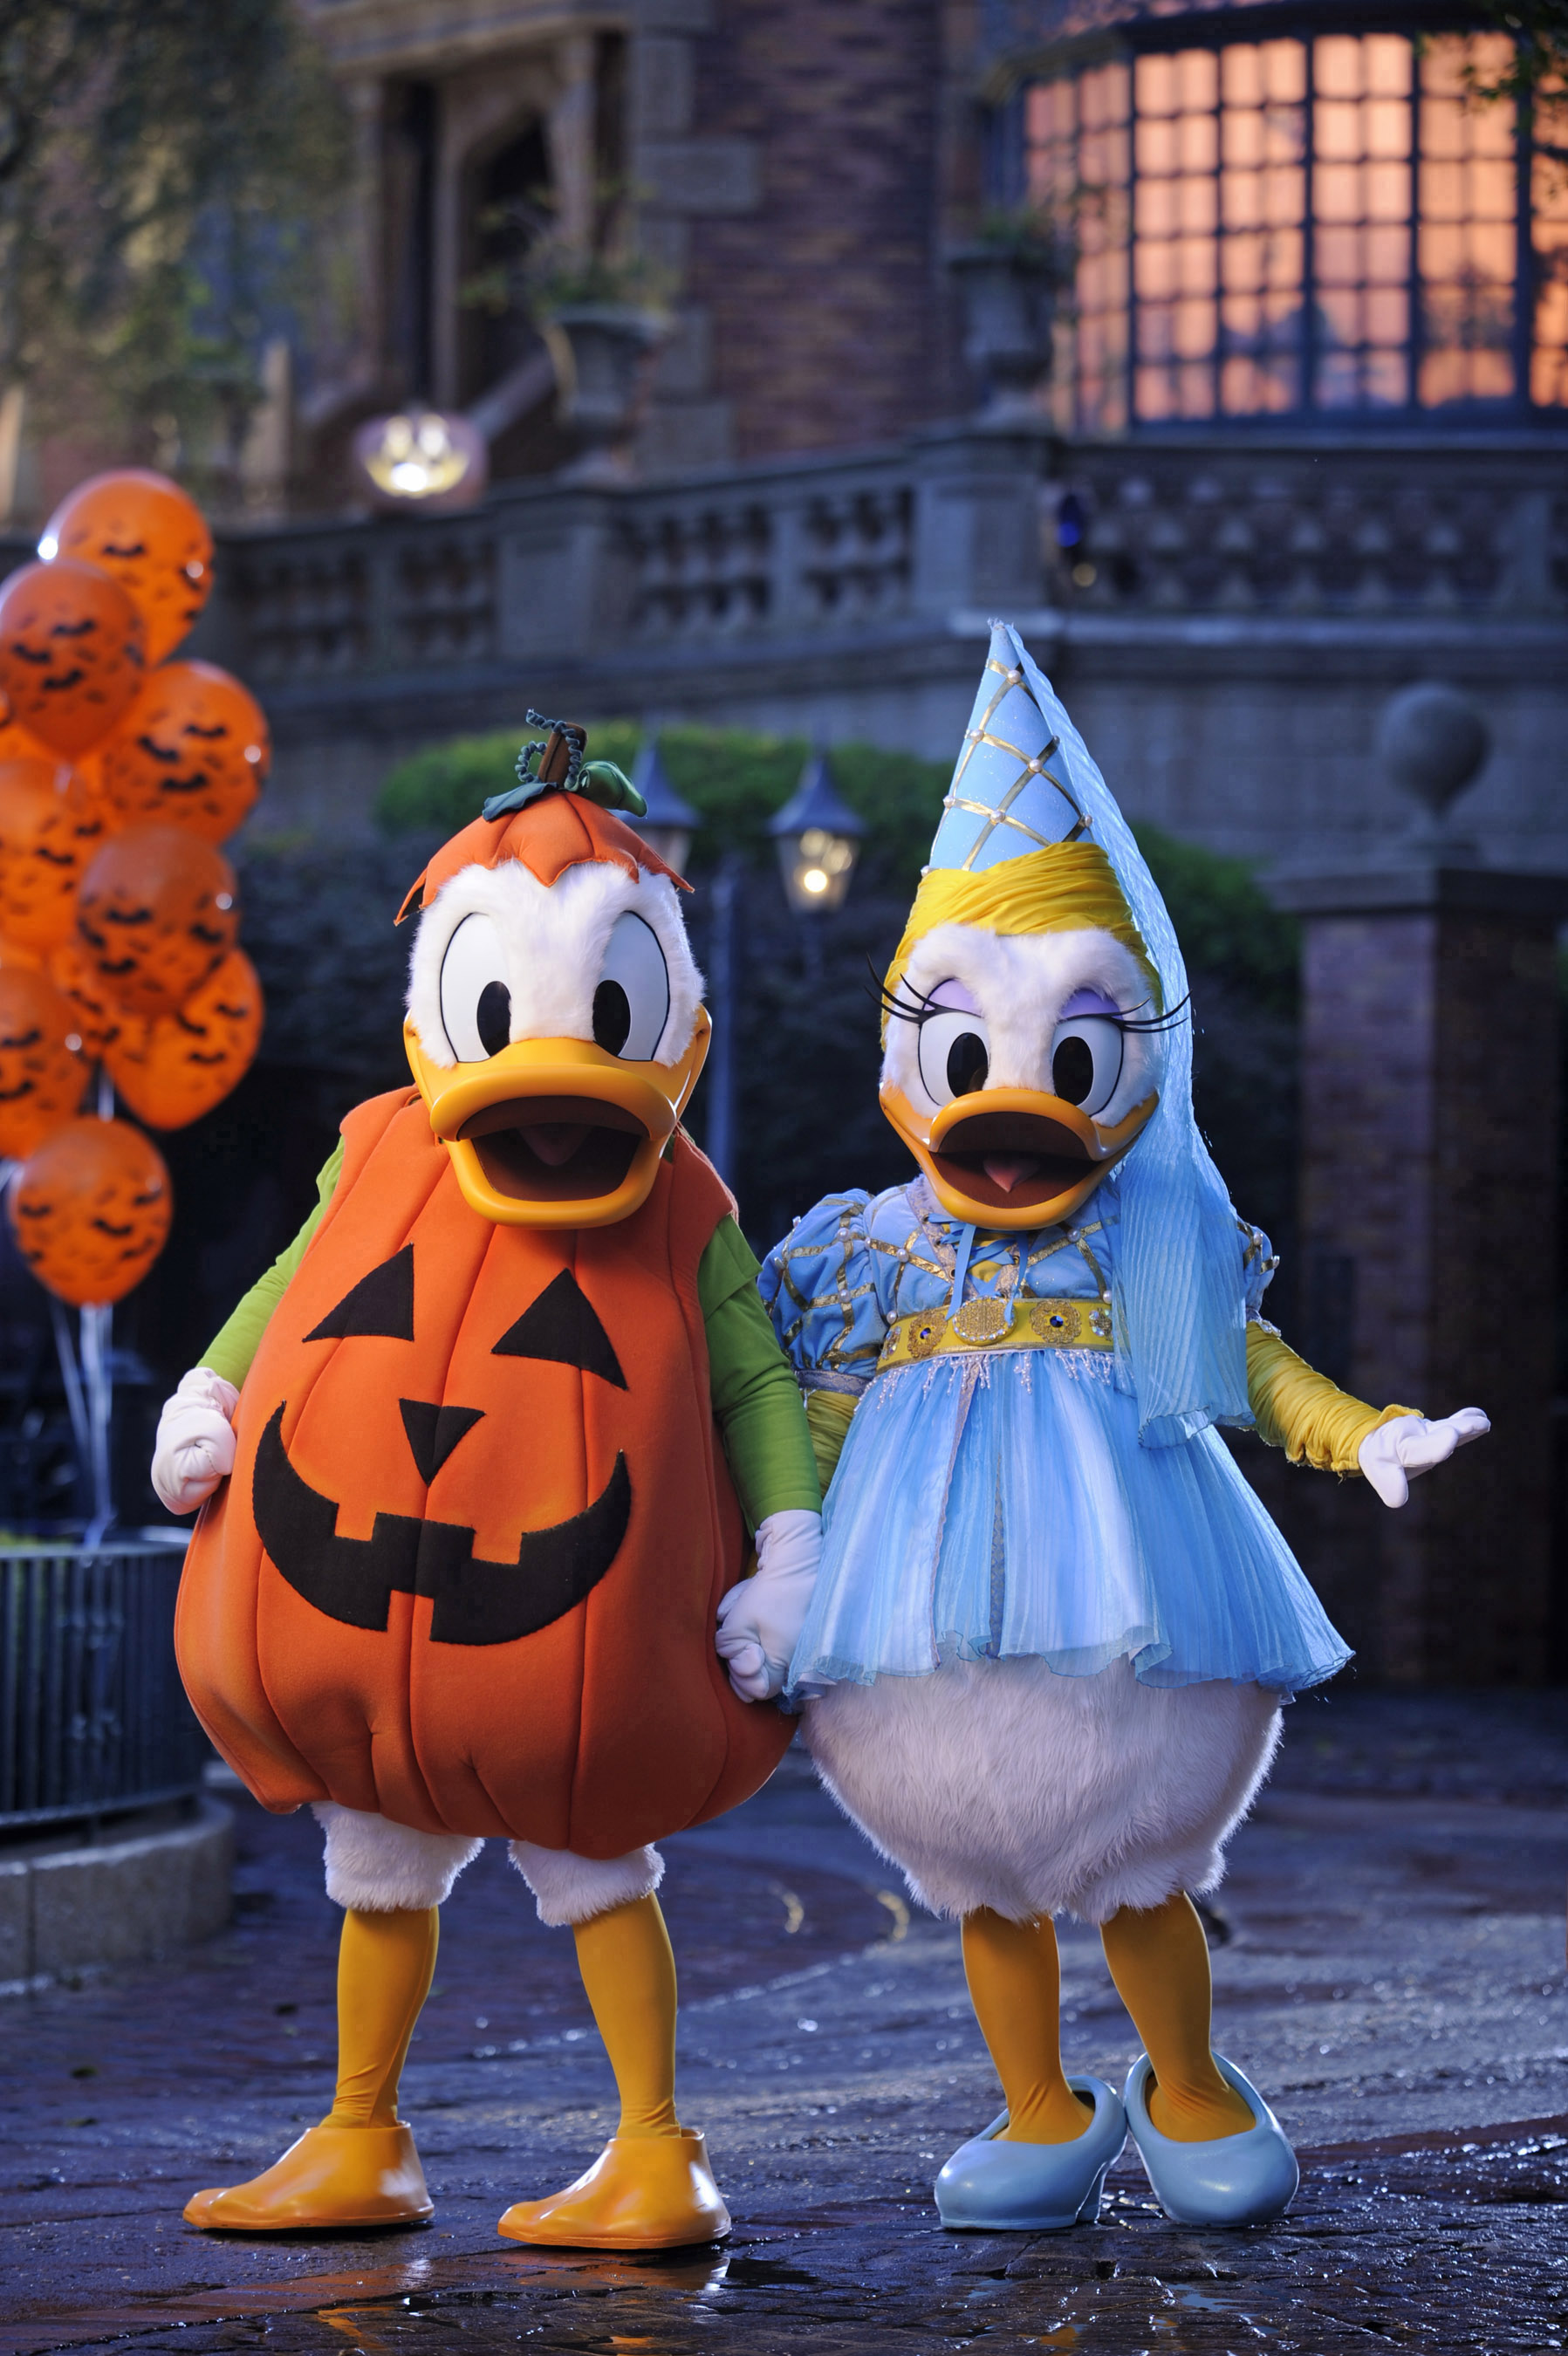 Pato Donald Daisy Halloween Magic Kingdom Disney